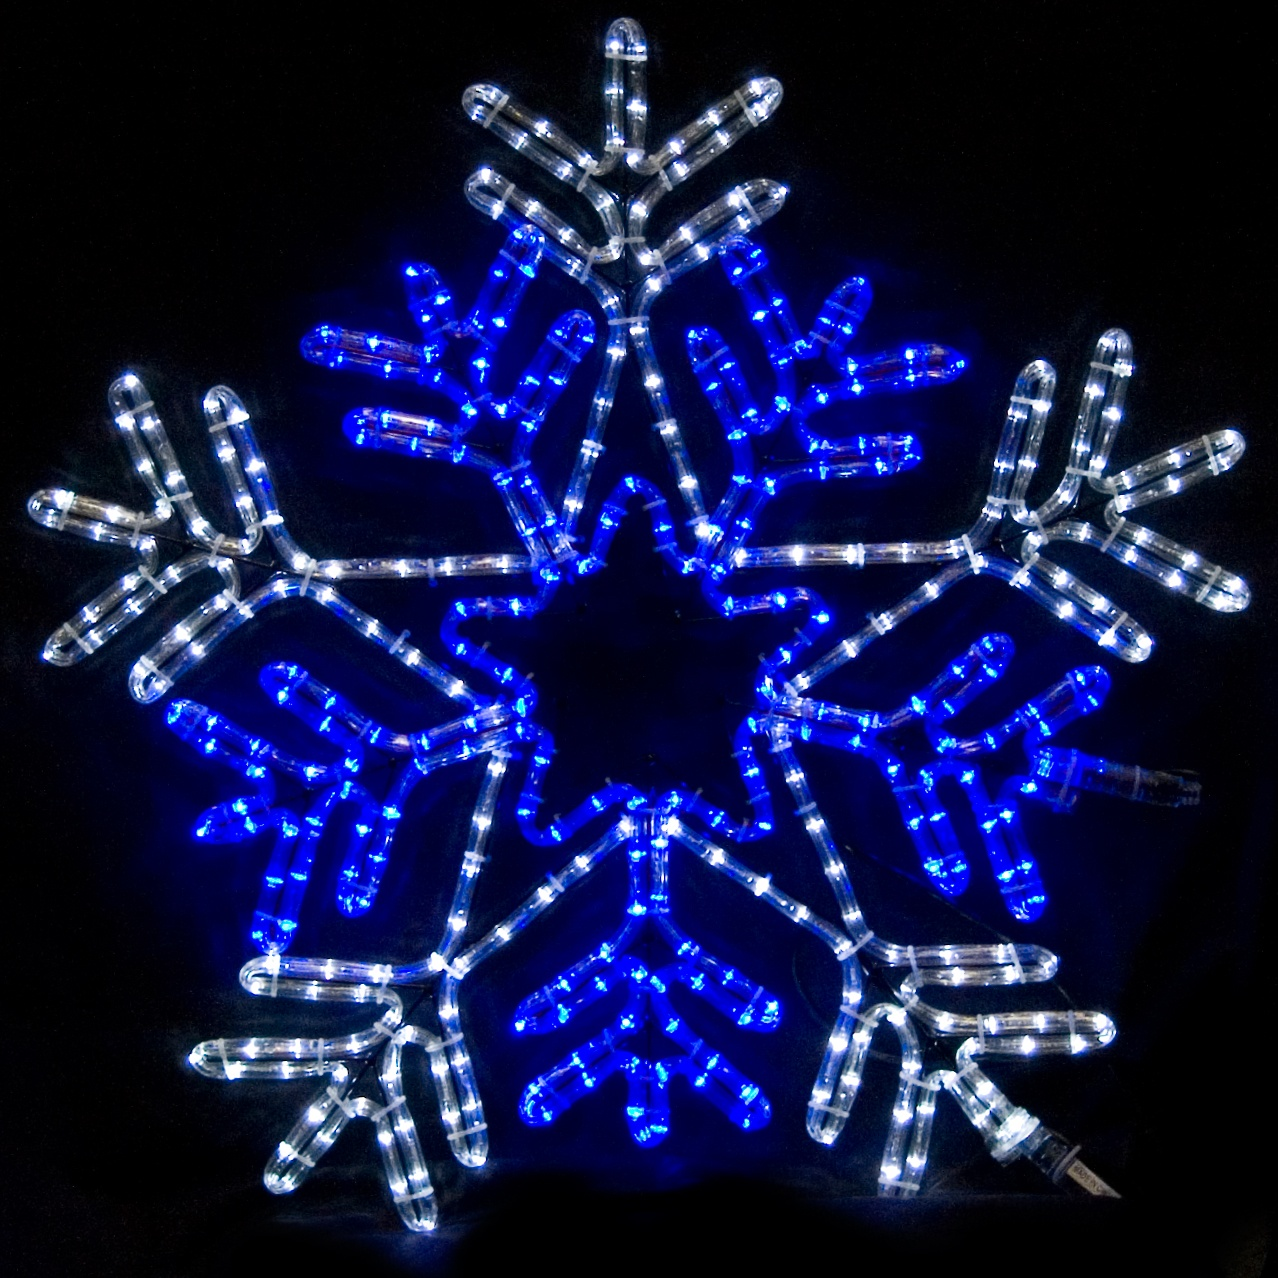 snowflakes stars 26 snowflake with blue center - Snowflake Christmas Decorations